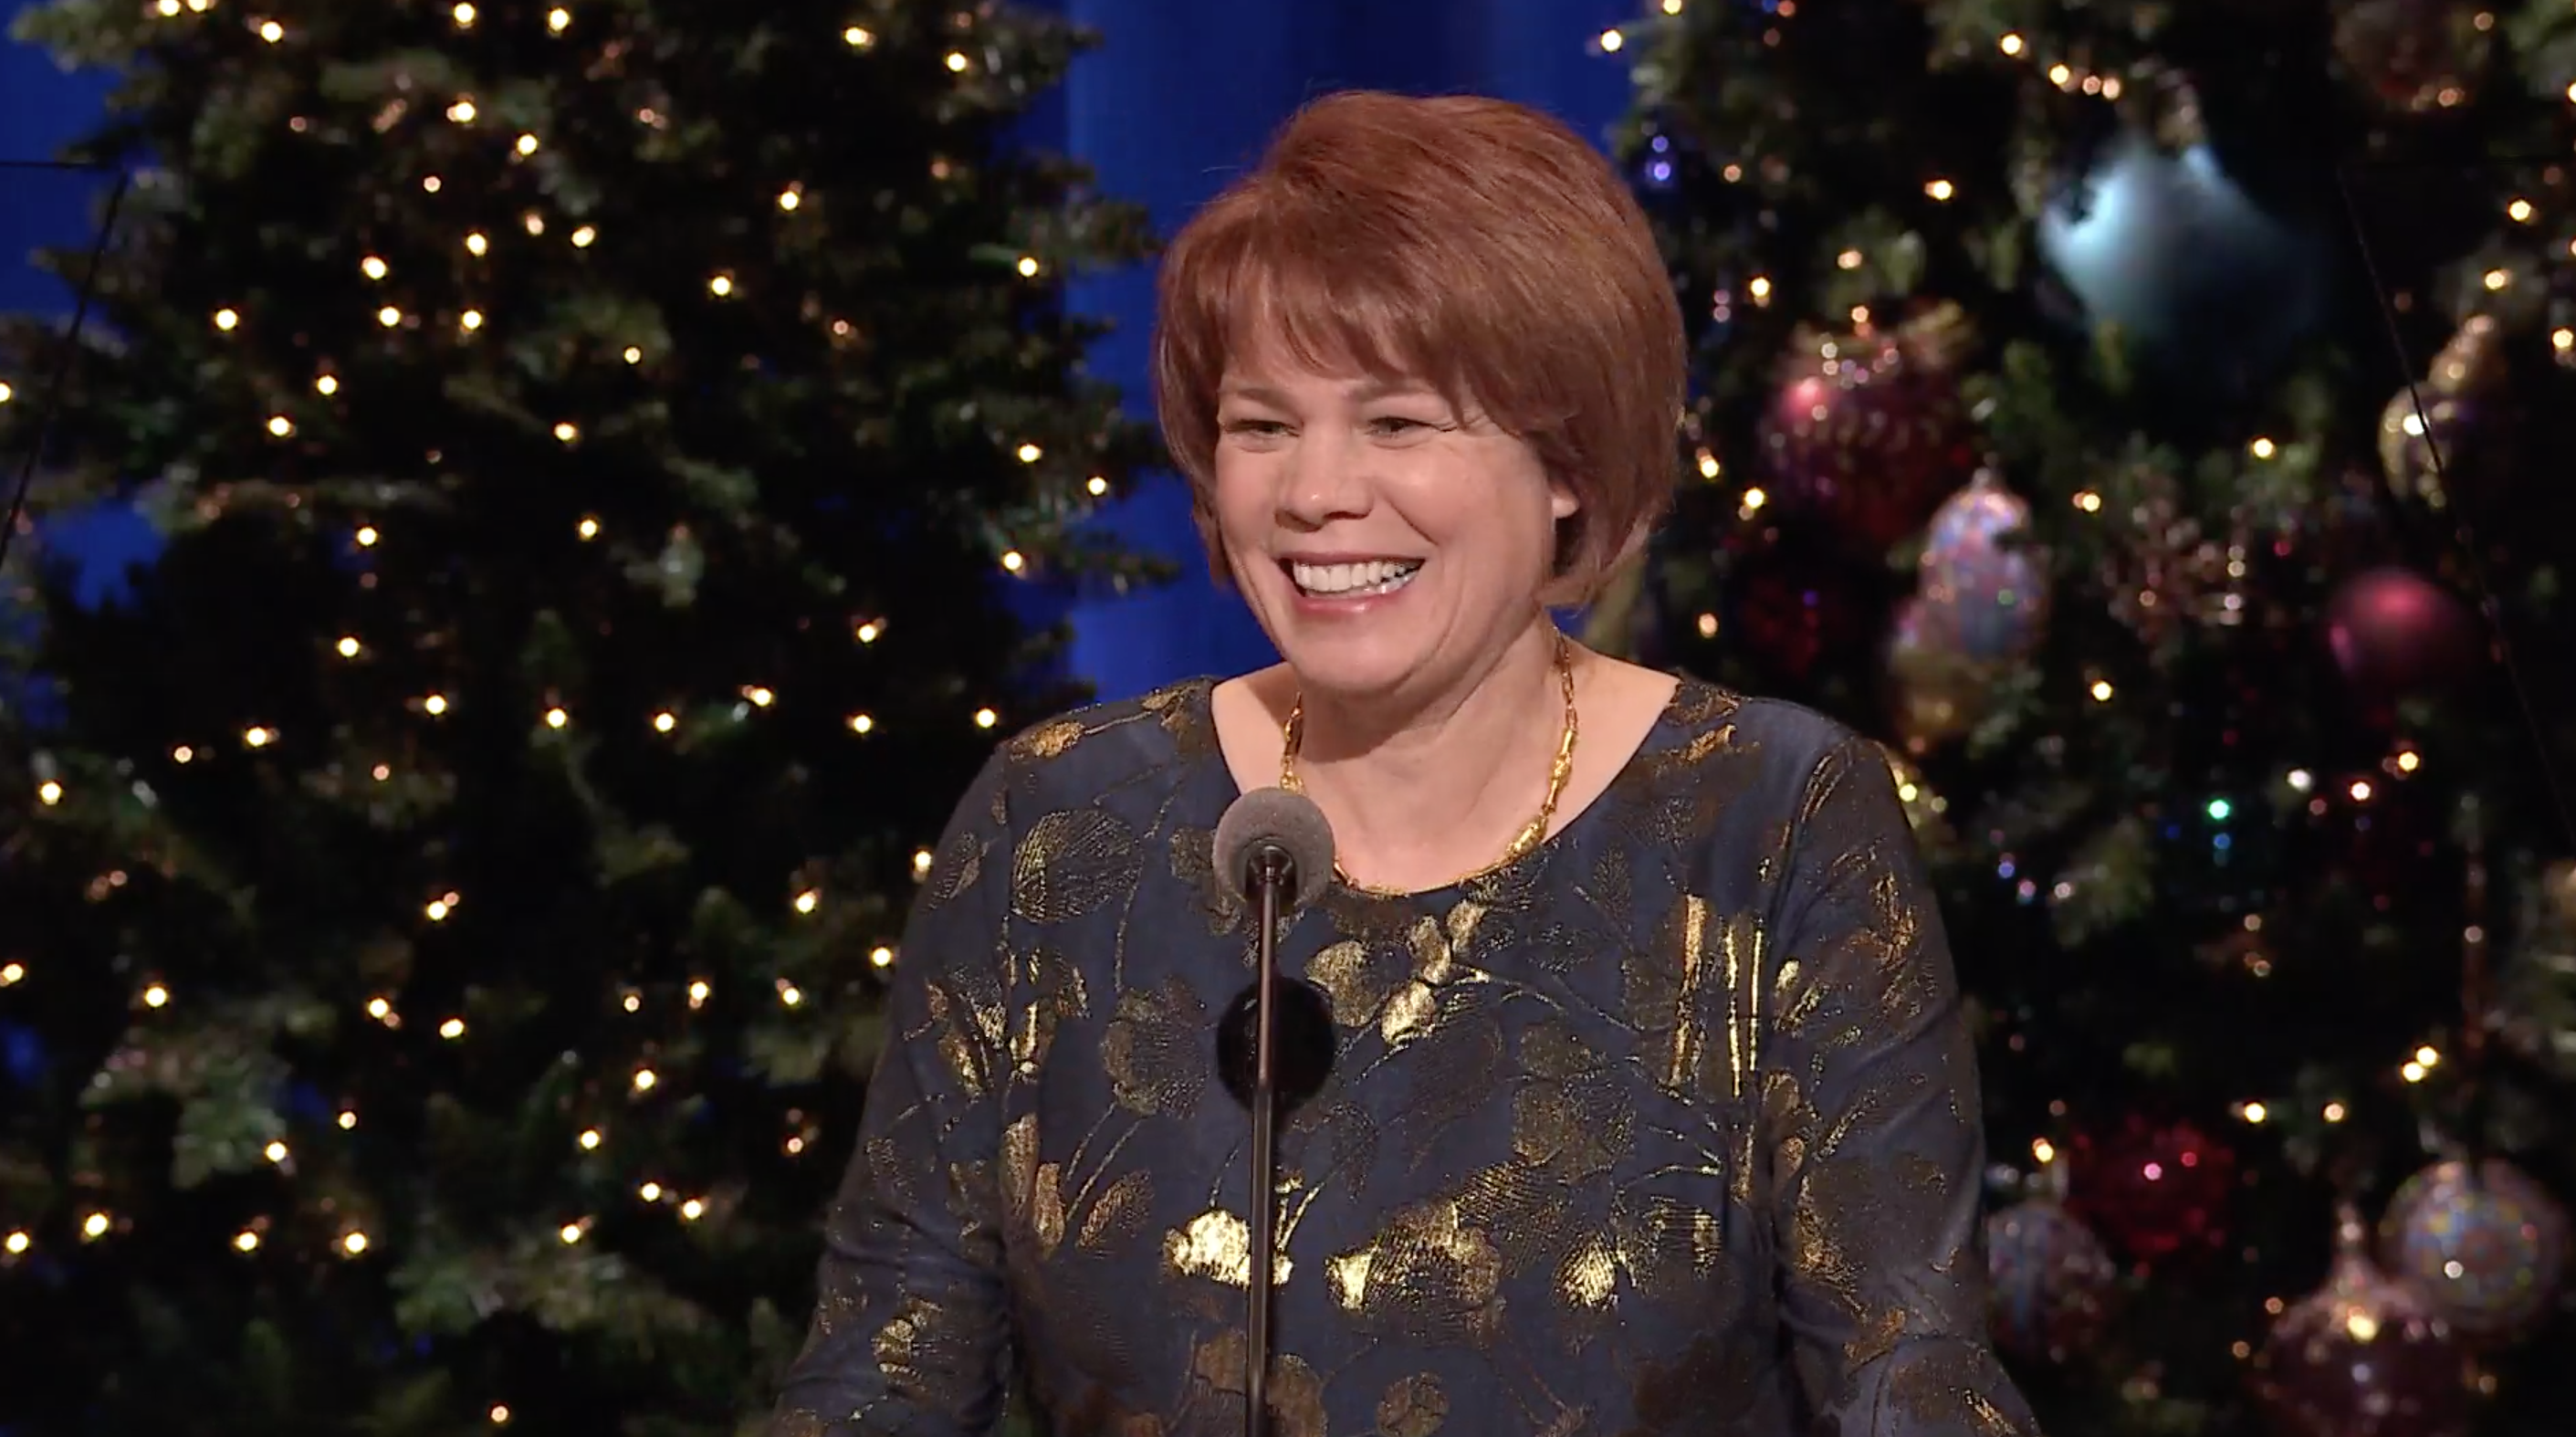 Sister Sharon Eubank gives an address during the First Presidency's Christmas Devotional on Dec. 2, 2018.